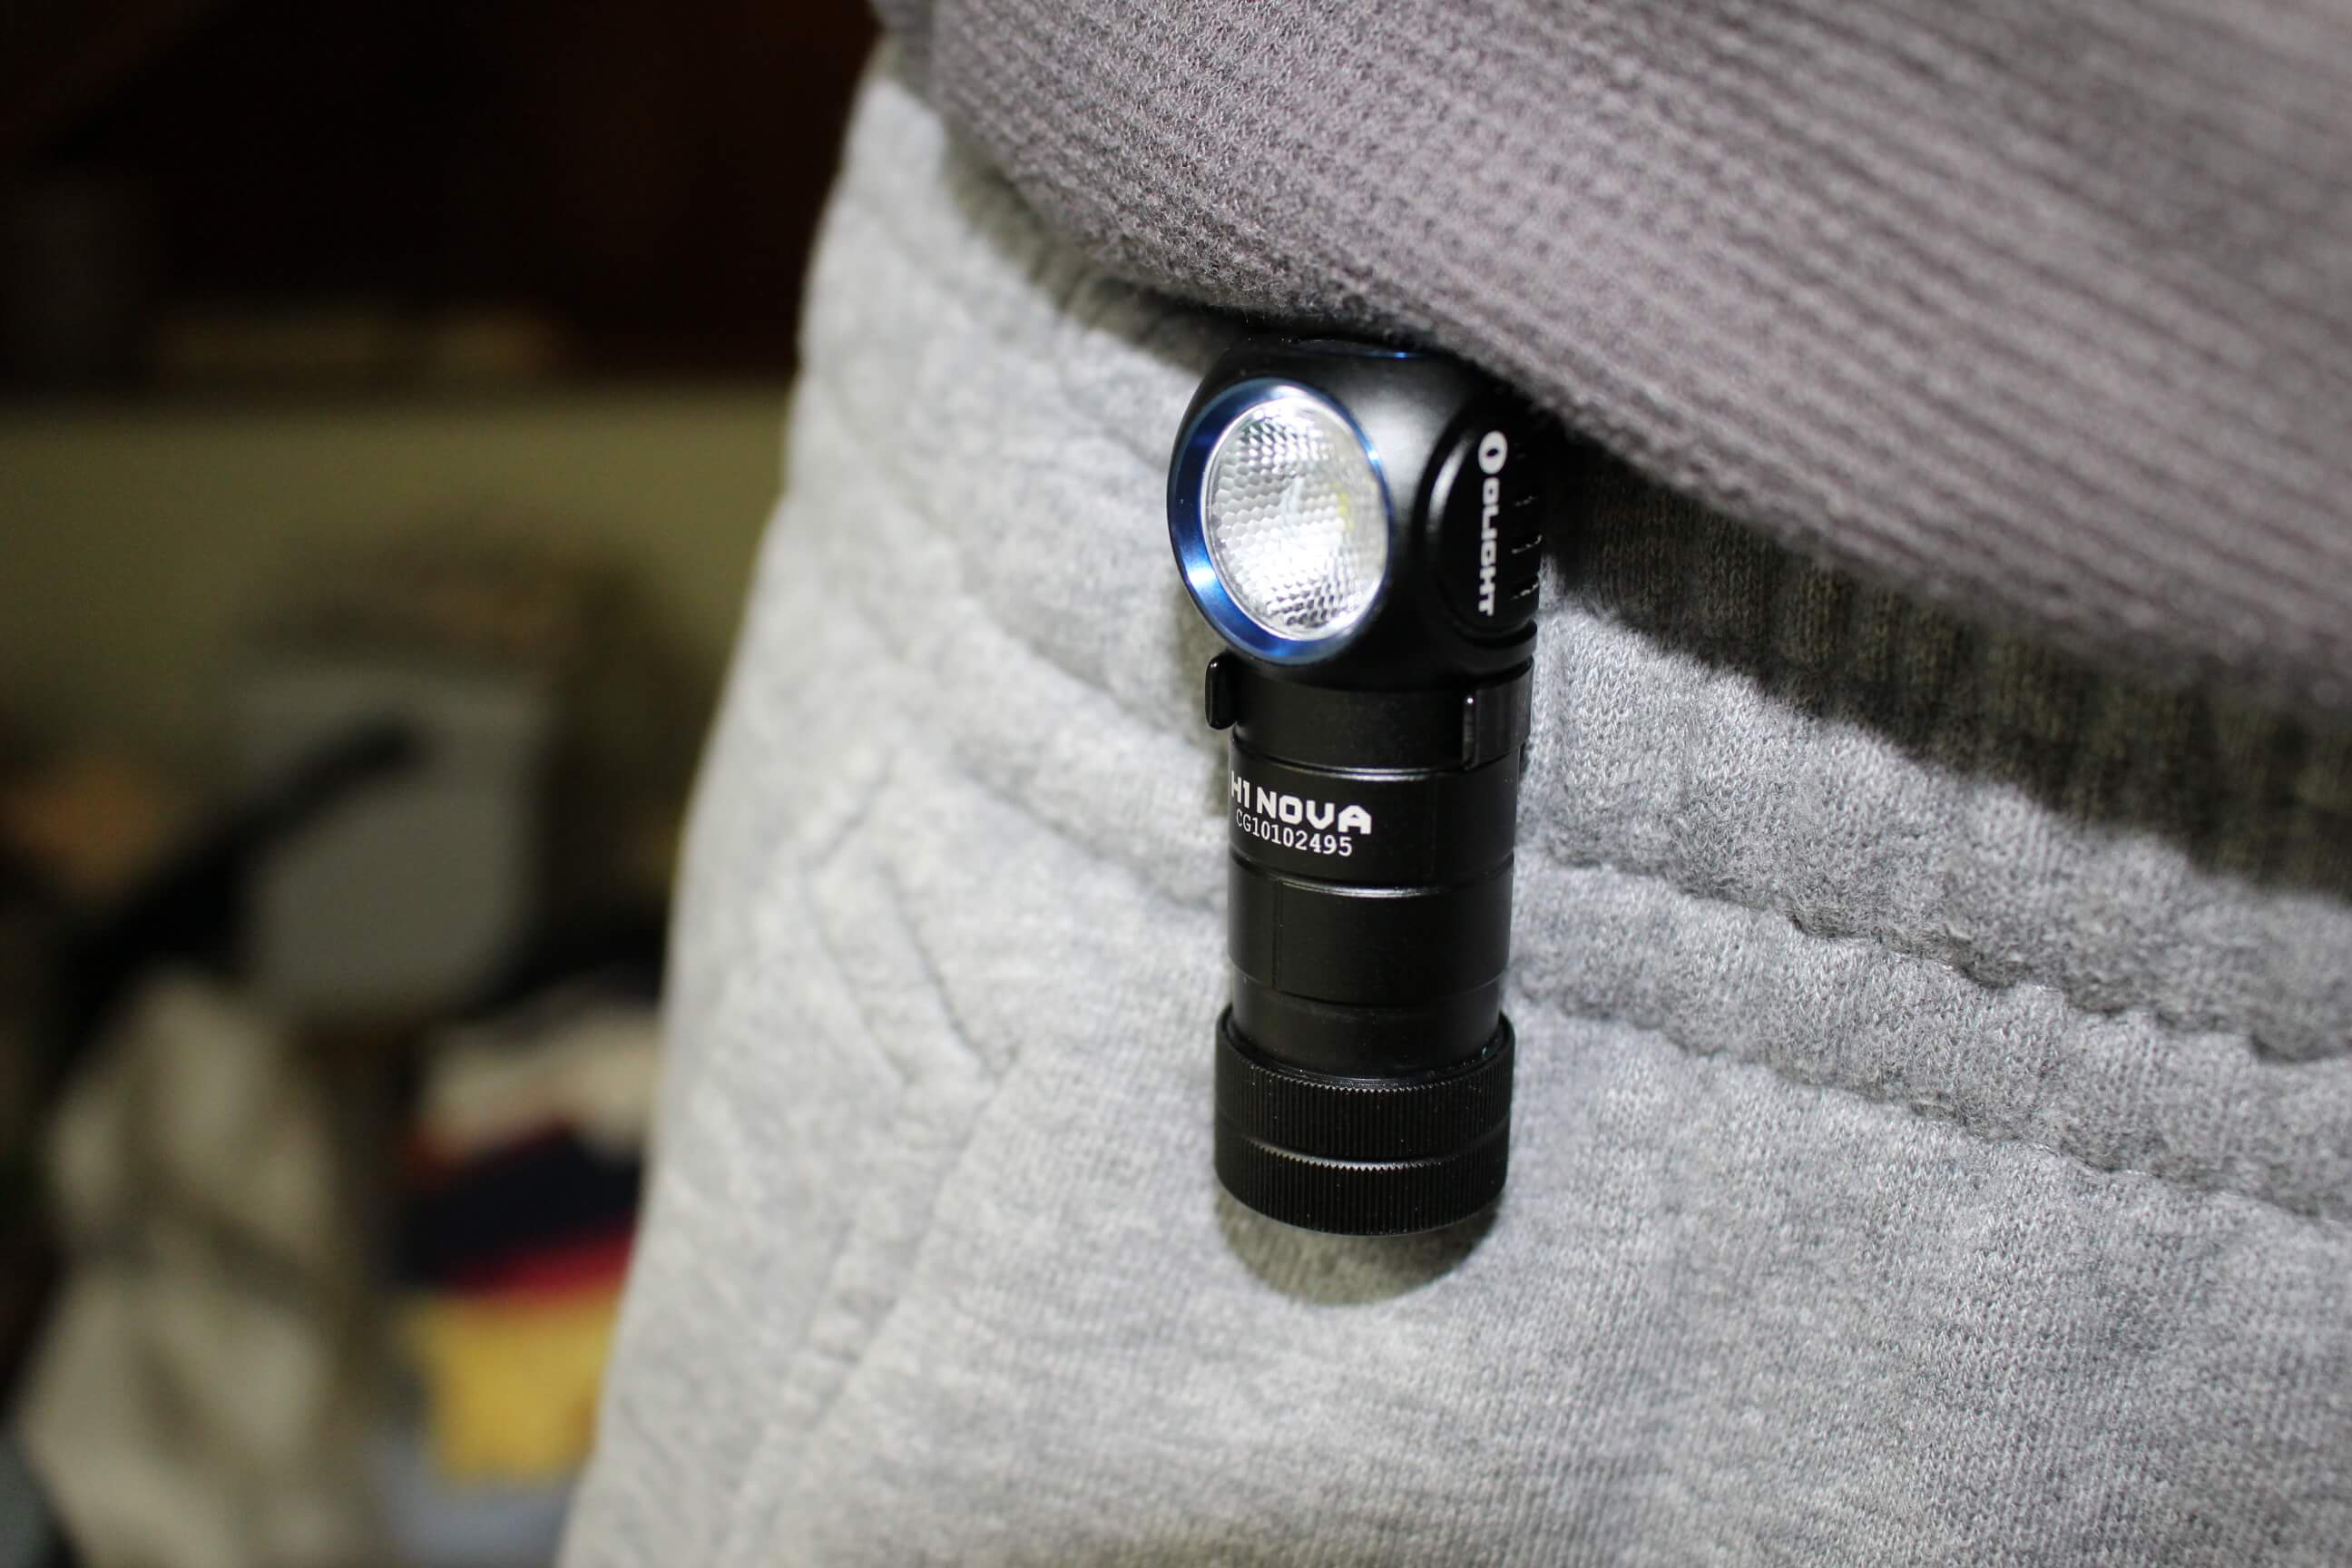 Olight H1 Nova Headband Flashlight Review